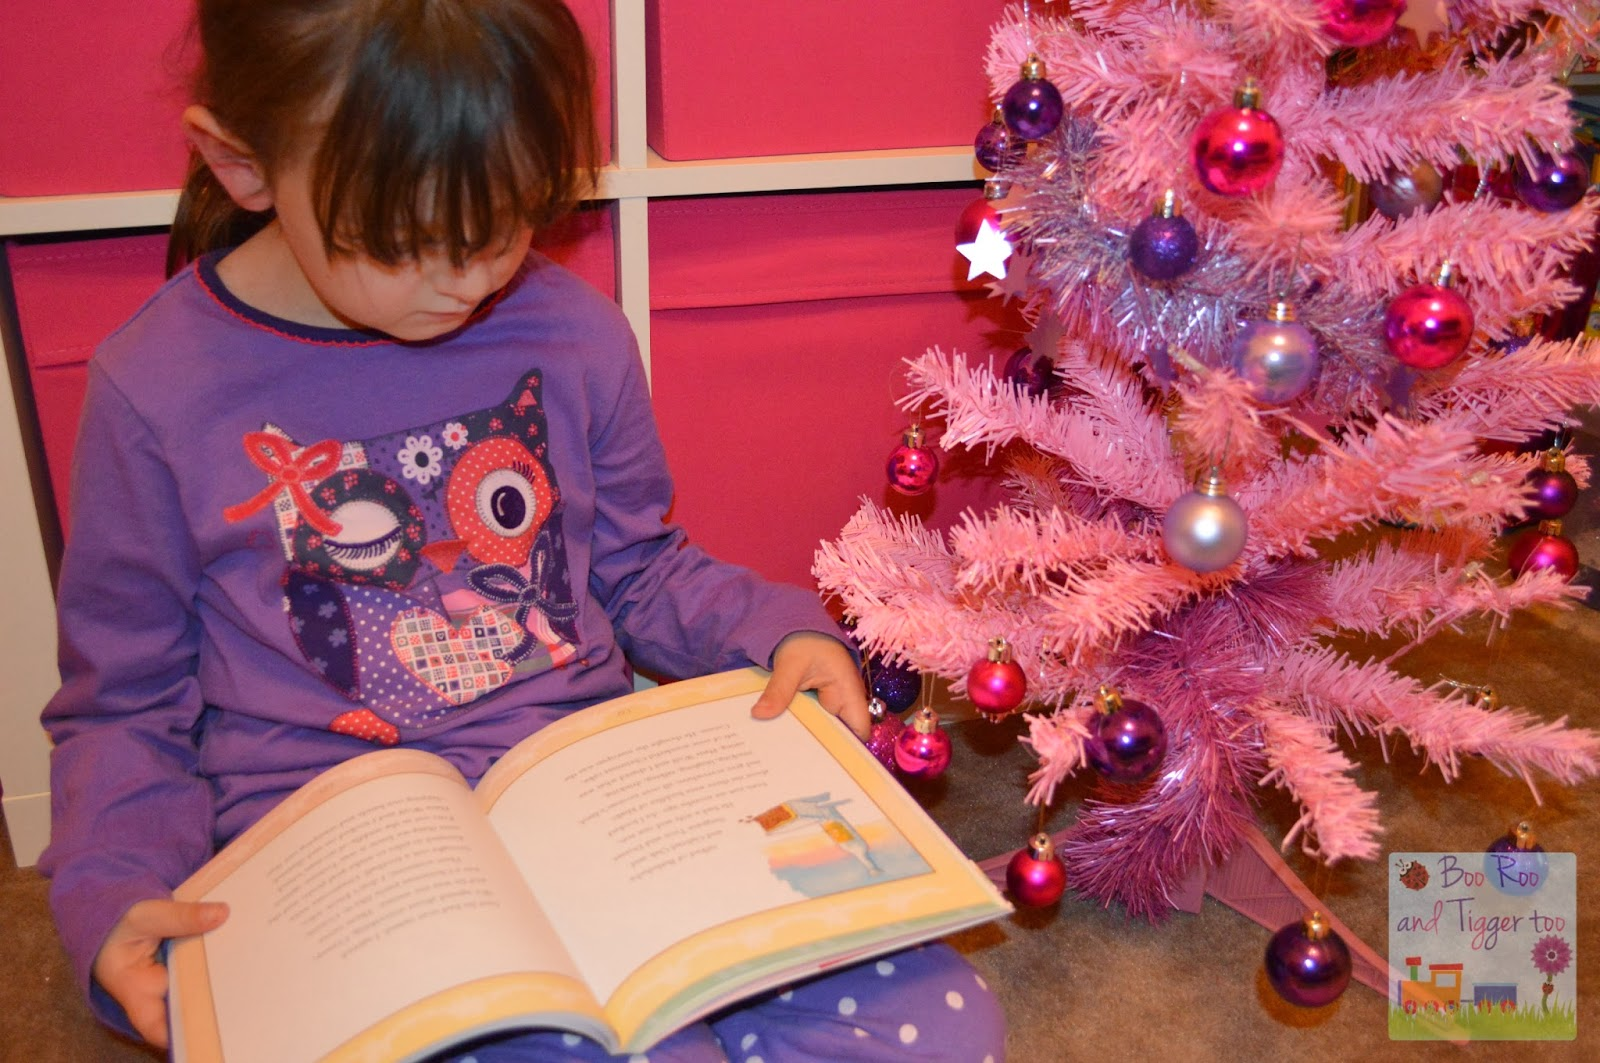 Boo Roo and Tigger Too: Michael Morpurgo Christmas Stories Book Review